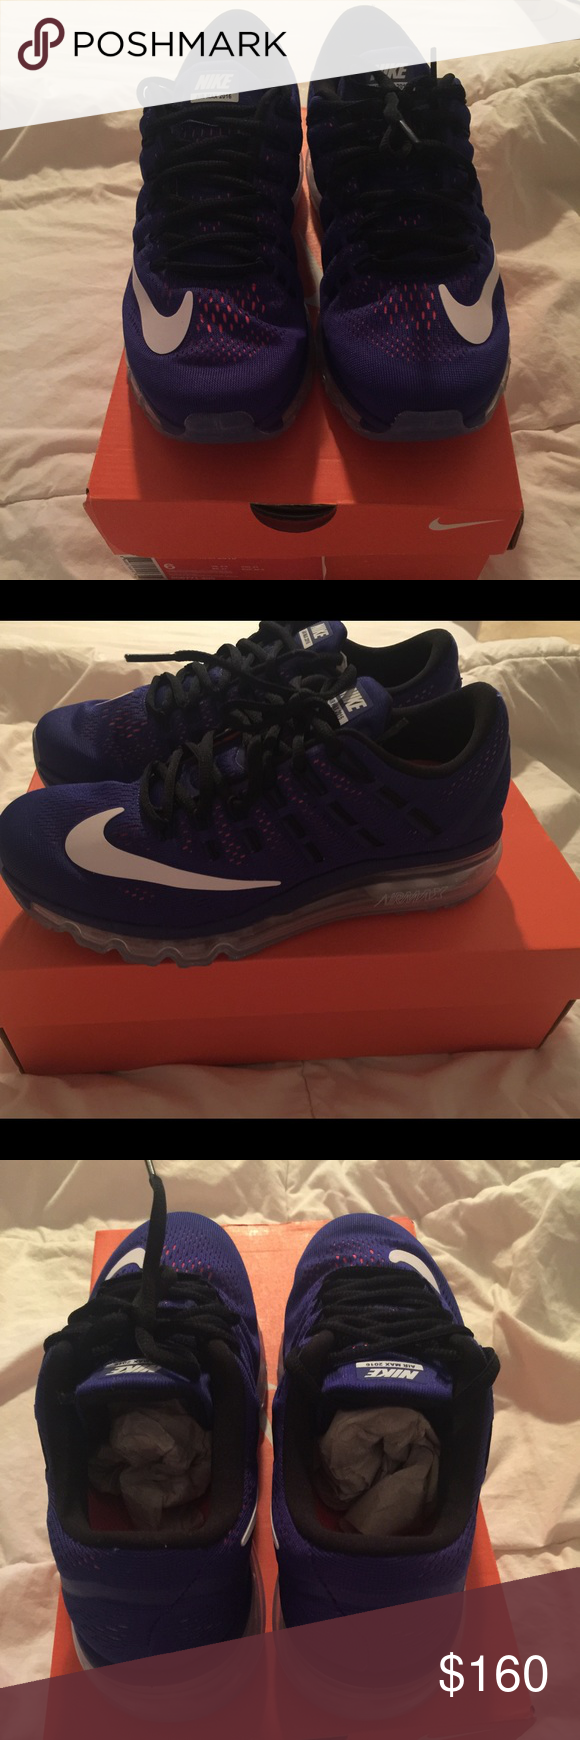 2016 Nike AirMax New w/Tags Men's Size 6 Coverts to Women's Size 8  Purple/Pink Peepholes Clear Bubble Nike Shoes Athletic Shoes